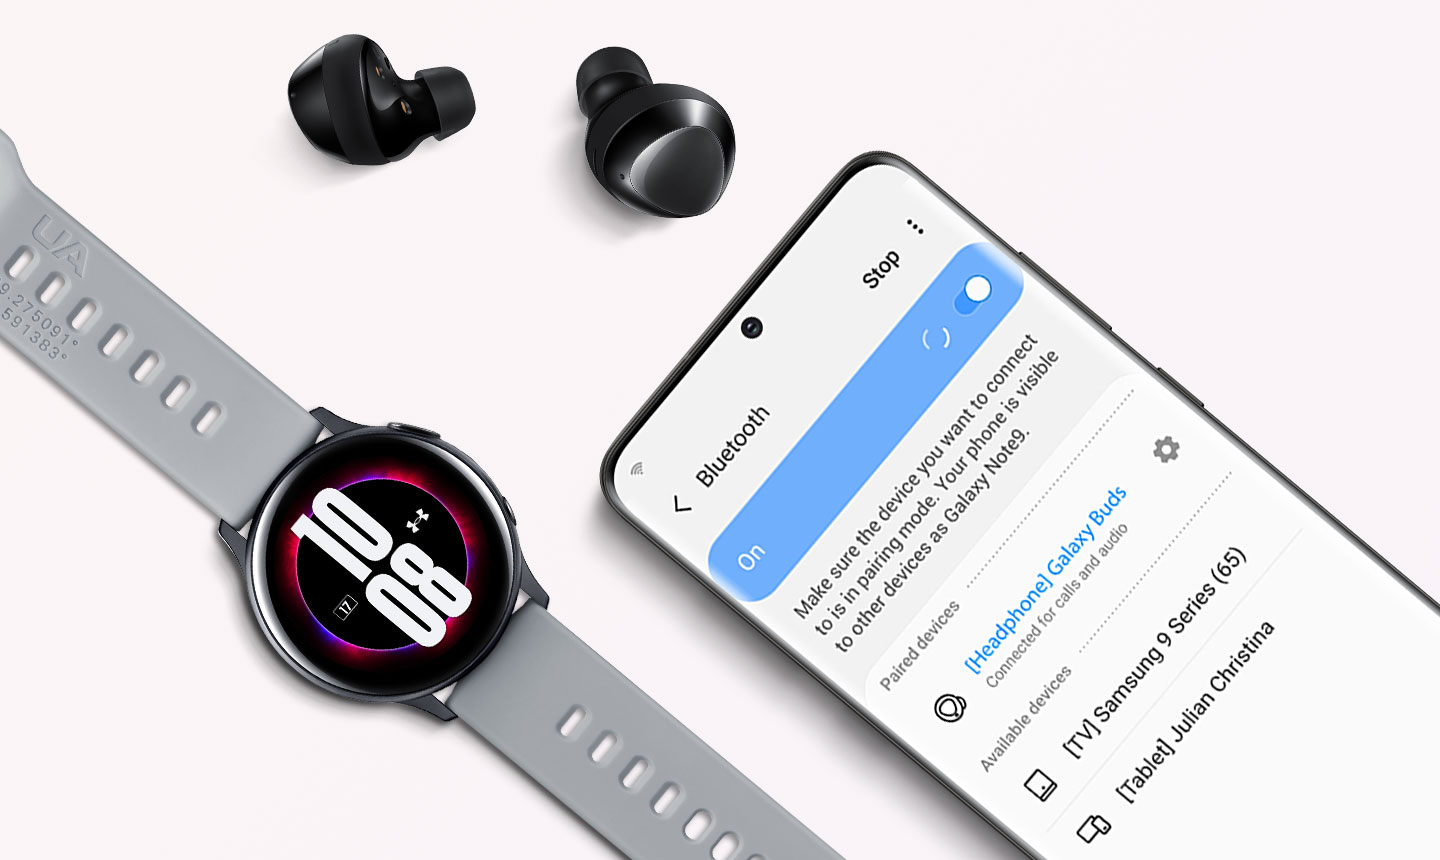 Black Galaxy Buds plus next to compatible Galaxy devices, with a phone displaying the Bluetooth pairing screen and a watch showing the time.